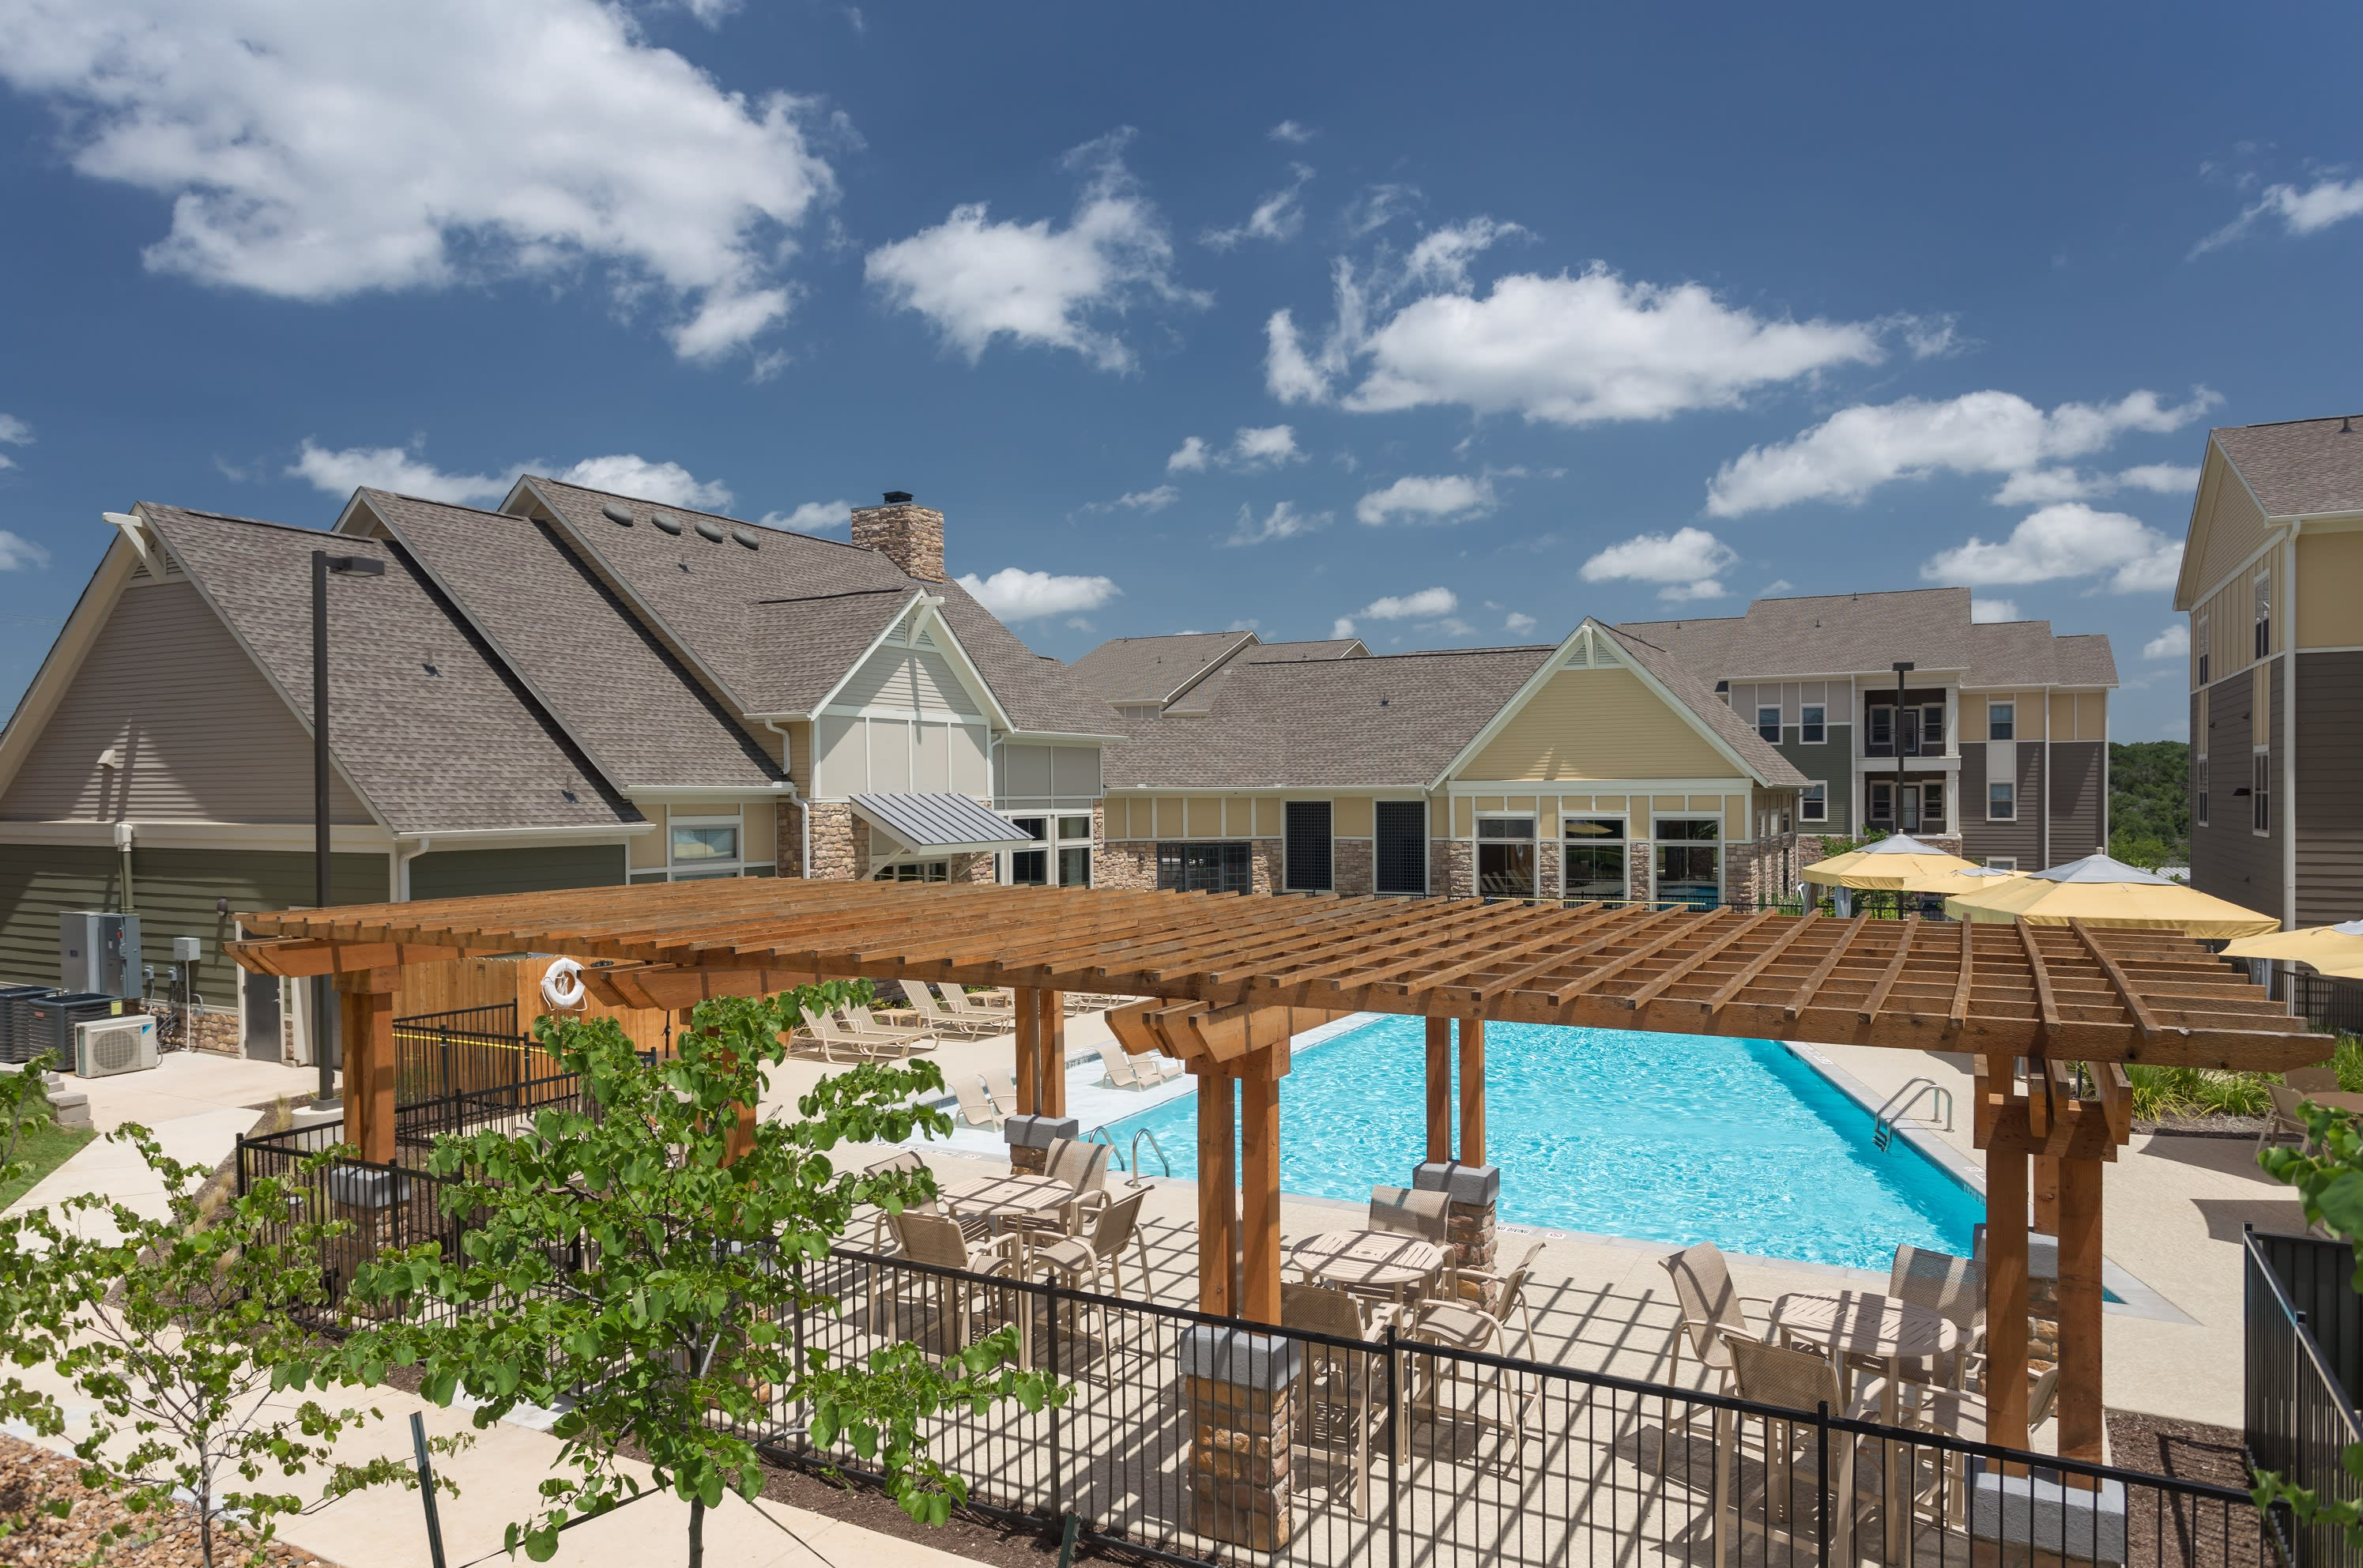 Sunny view of pool and cabana at Encore 281 in San Antonio, Texas